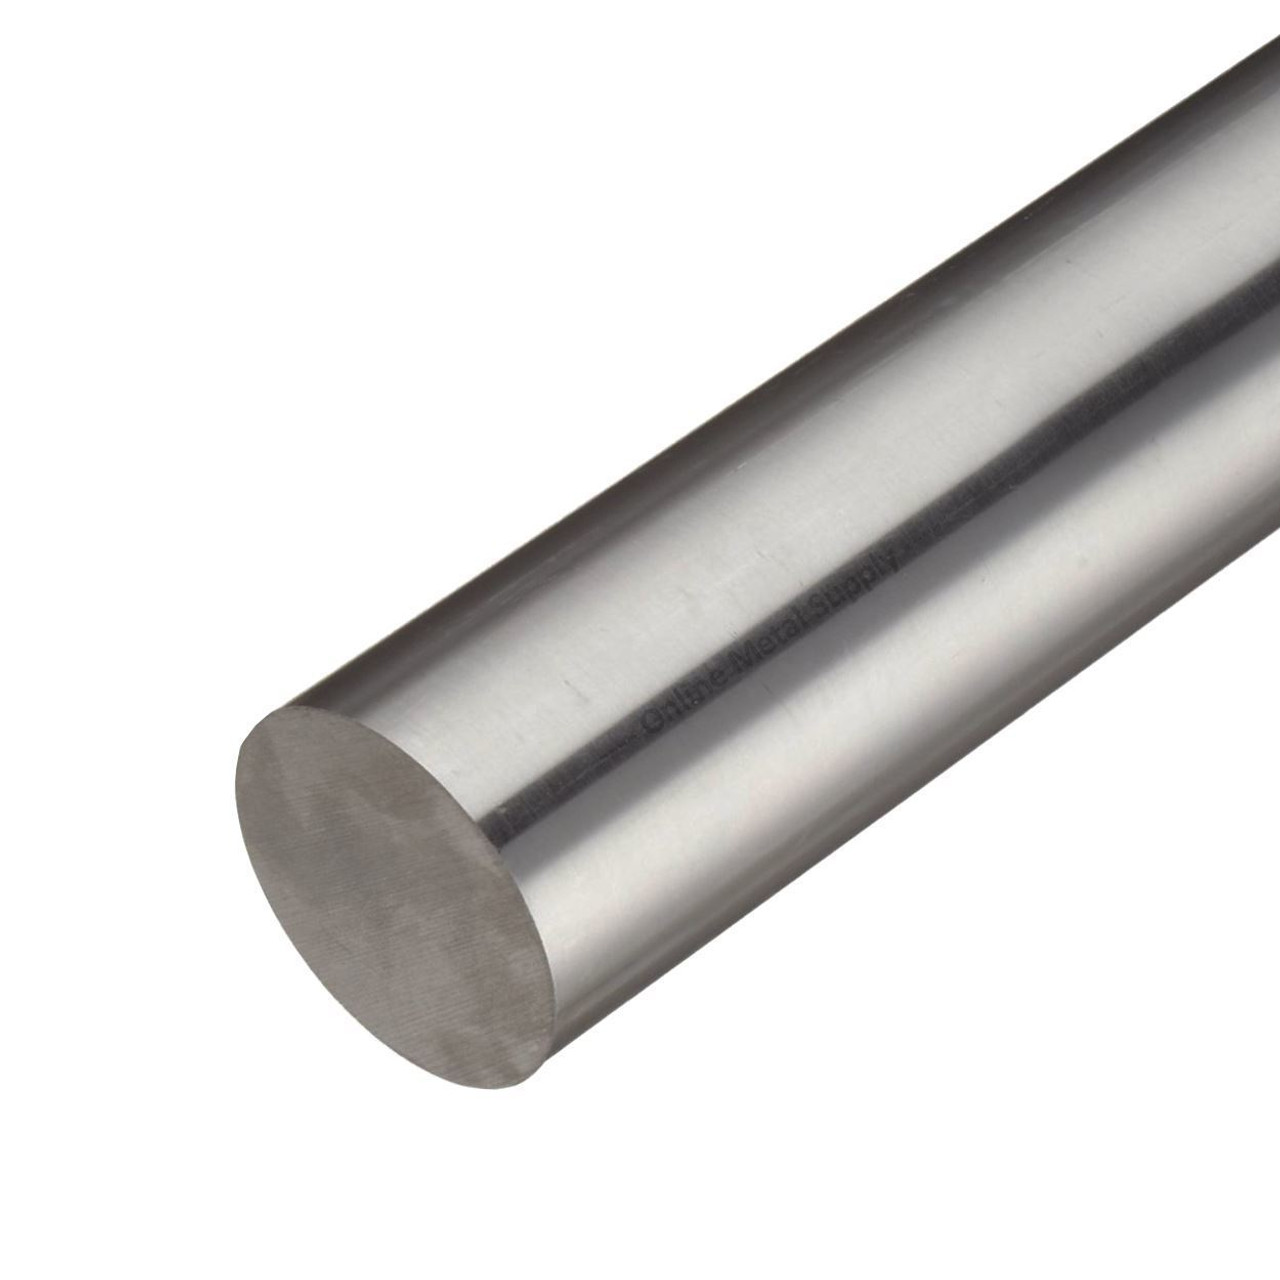 1.250 (1-1/4 inch) x 24 inches, 15-5 Cond A CF Stainless Steel Round Rod